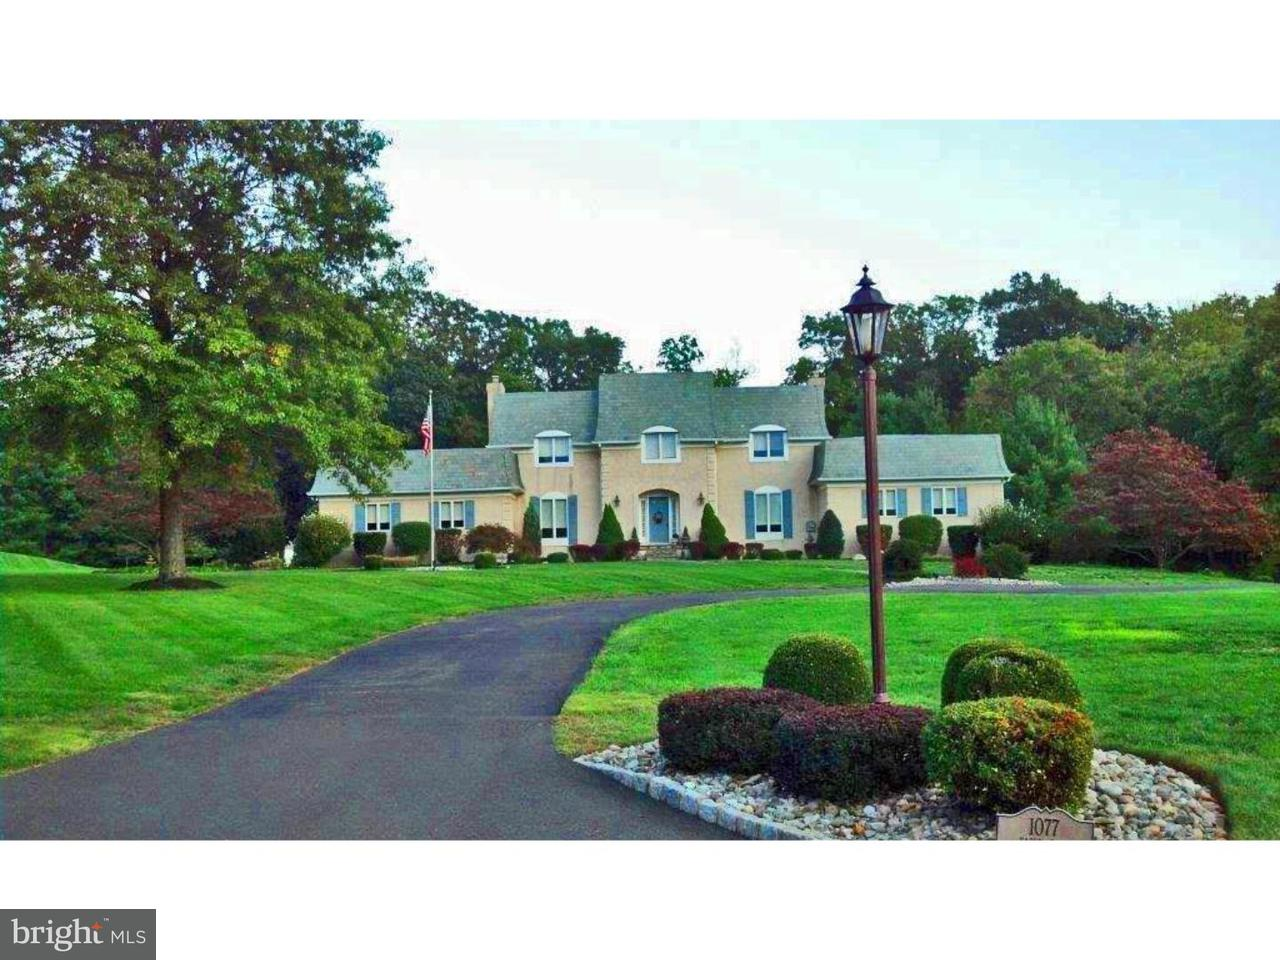 Single Family Home for Rent at 1077 EAGLE Road Newtown, Pennsylvania 18940 United States